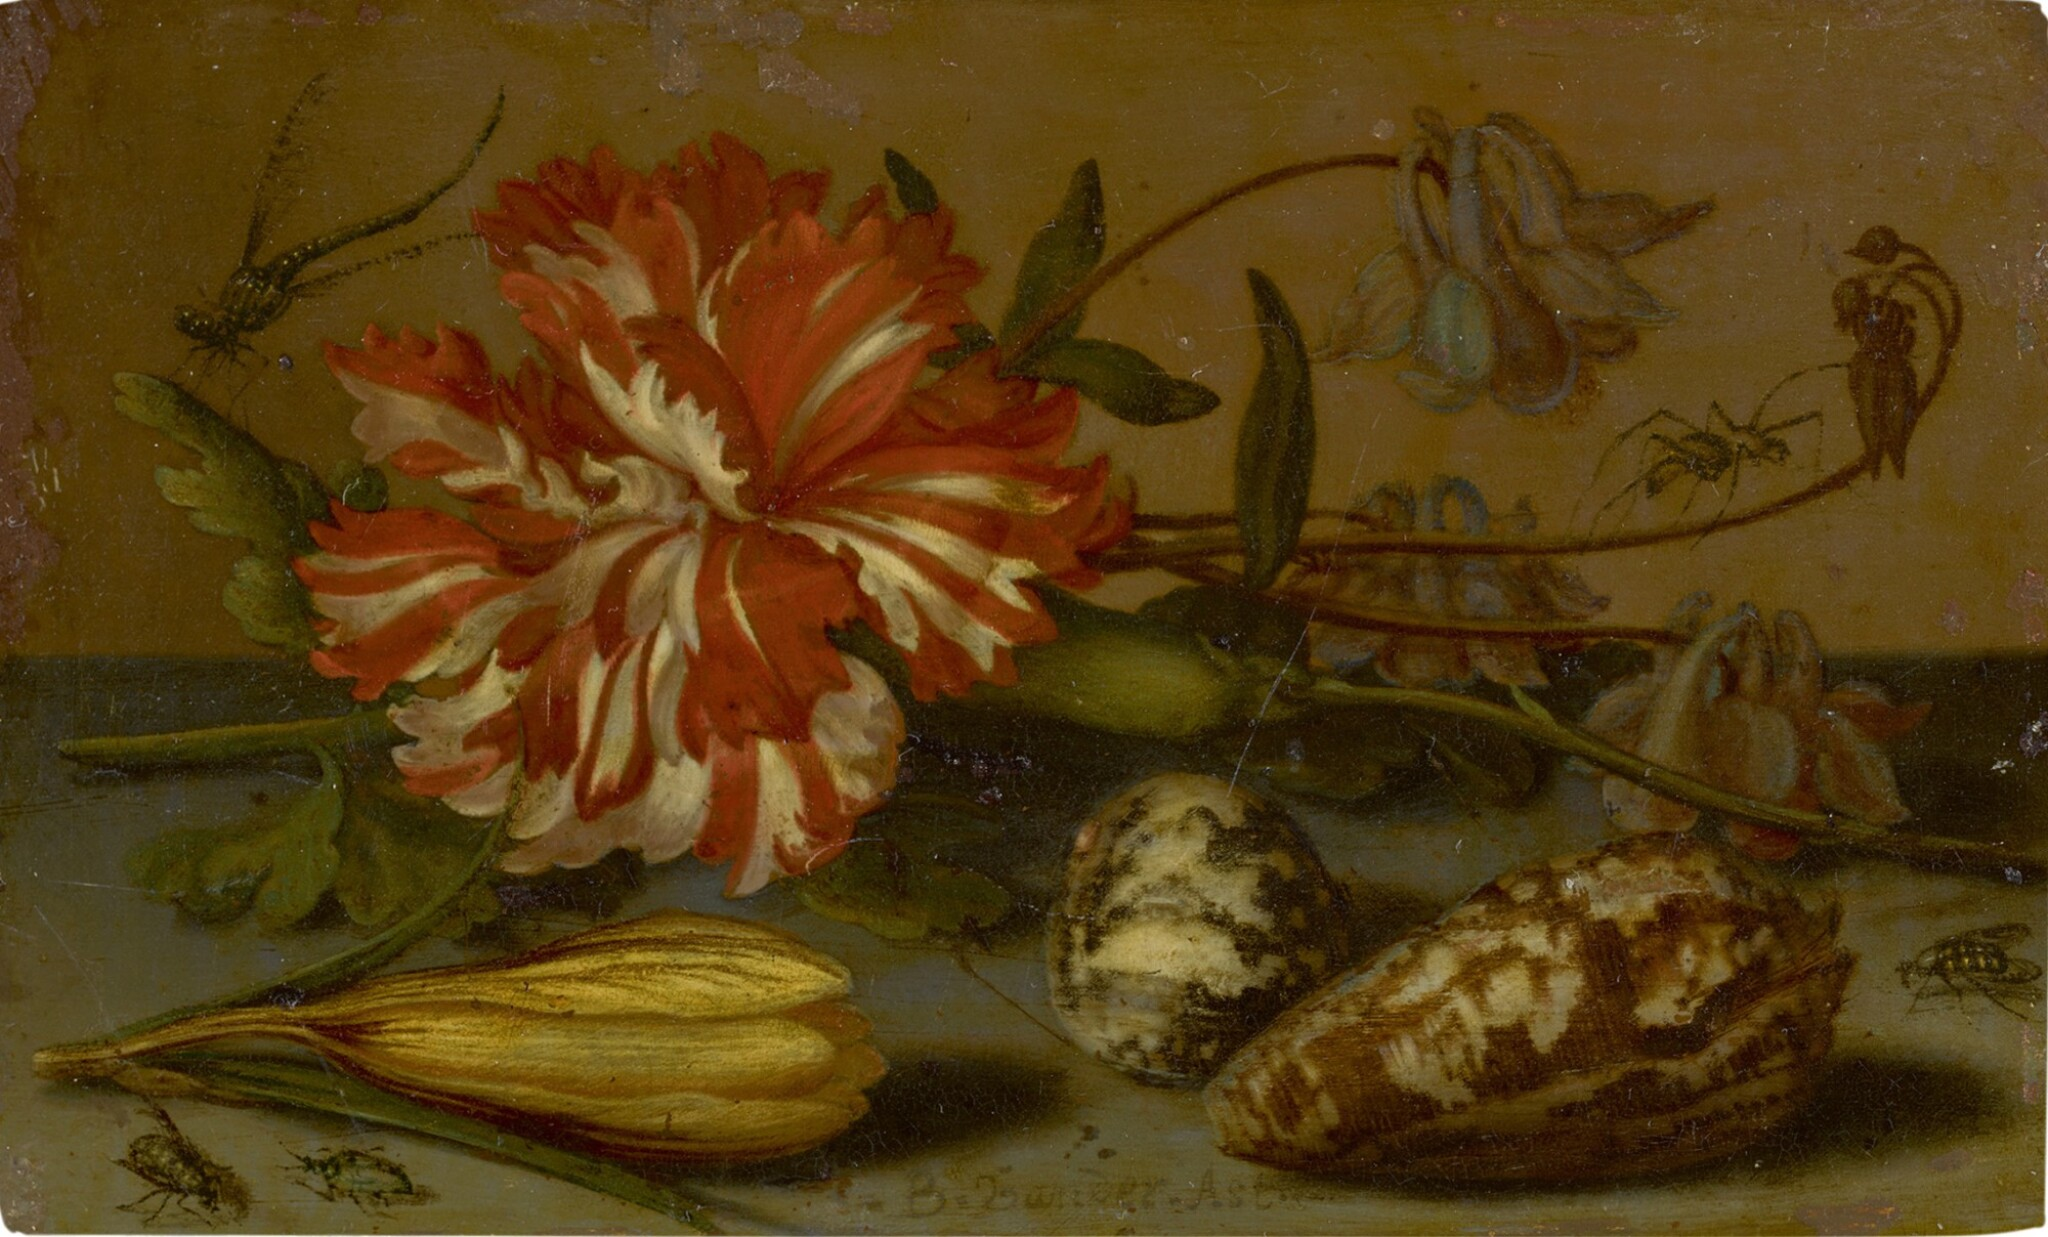 View 1 of Lot 125. BALTHASAR VAN DER AST |  STILL LIFE WITH A CARNATION AND A CROCUS, TWO SHELLS, AND A DRAGONFLY, SPIDER AND FLIES, ALL ON A STONE LEDGE.